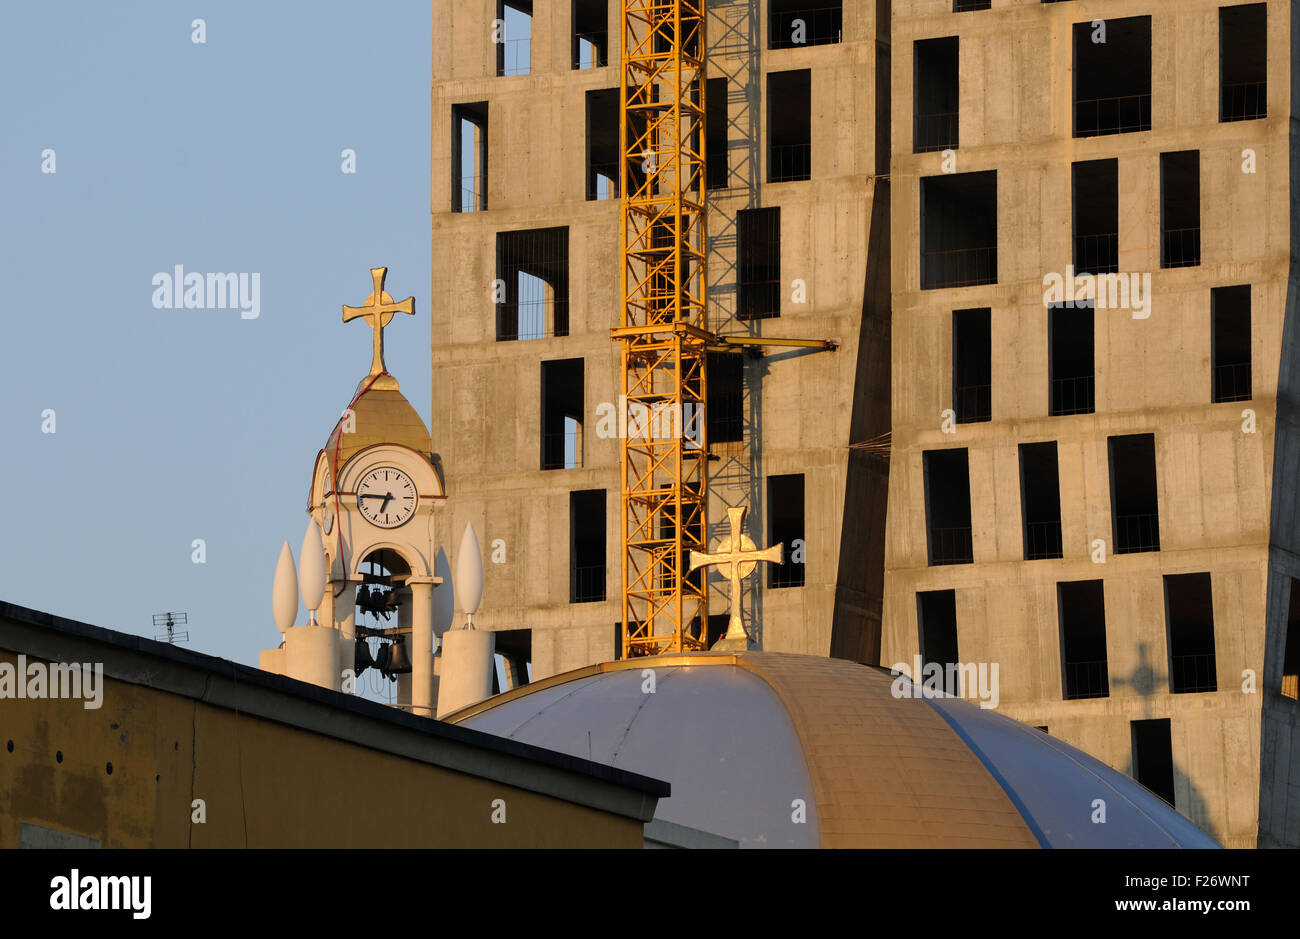 The bell and clock tower of the Resurrection of Christ Orthodox Cathedral of Tirana beside a new high rise building - Stock Image